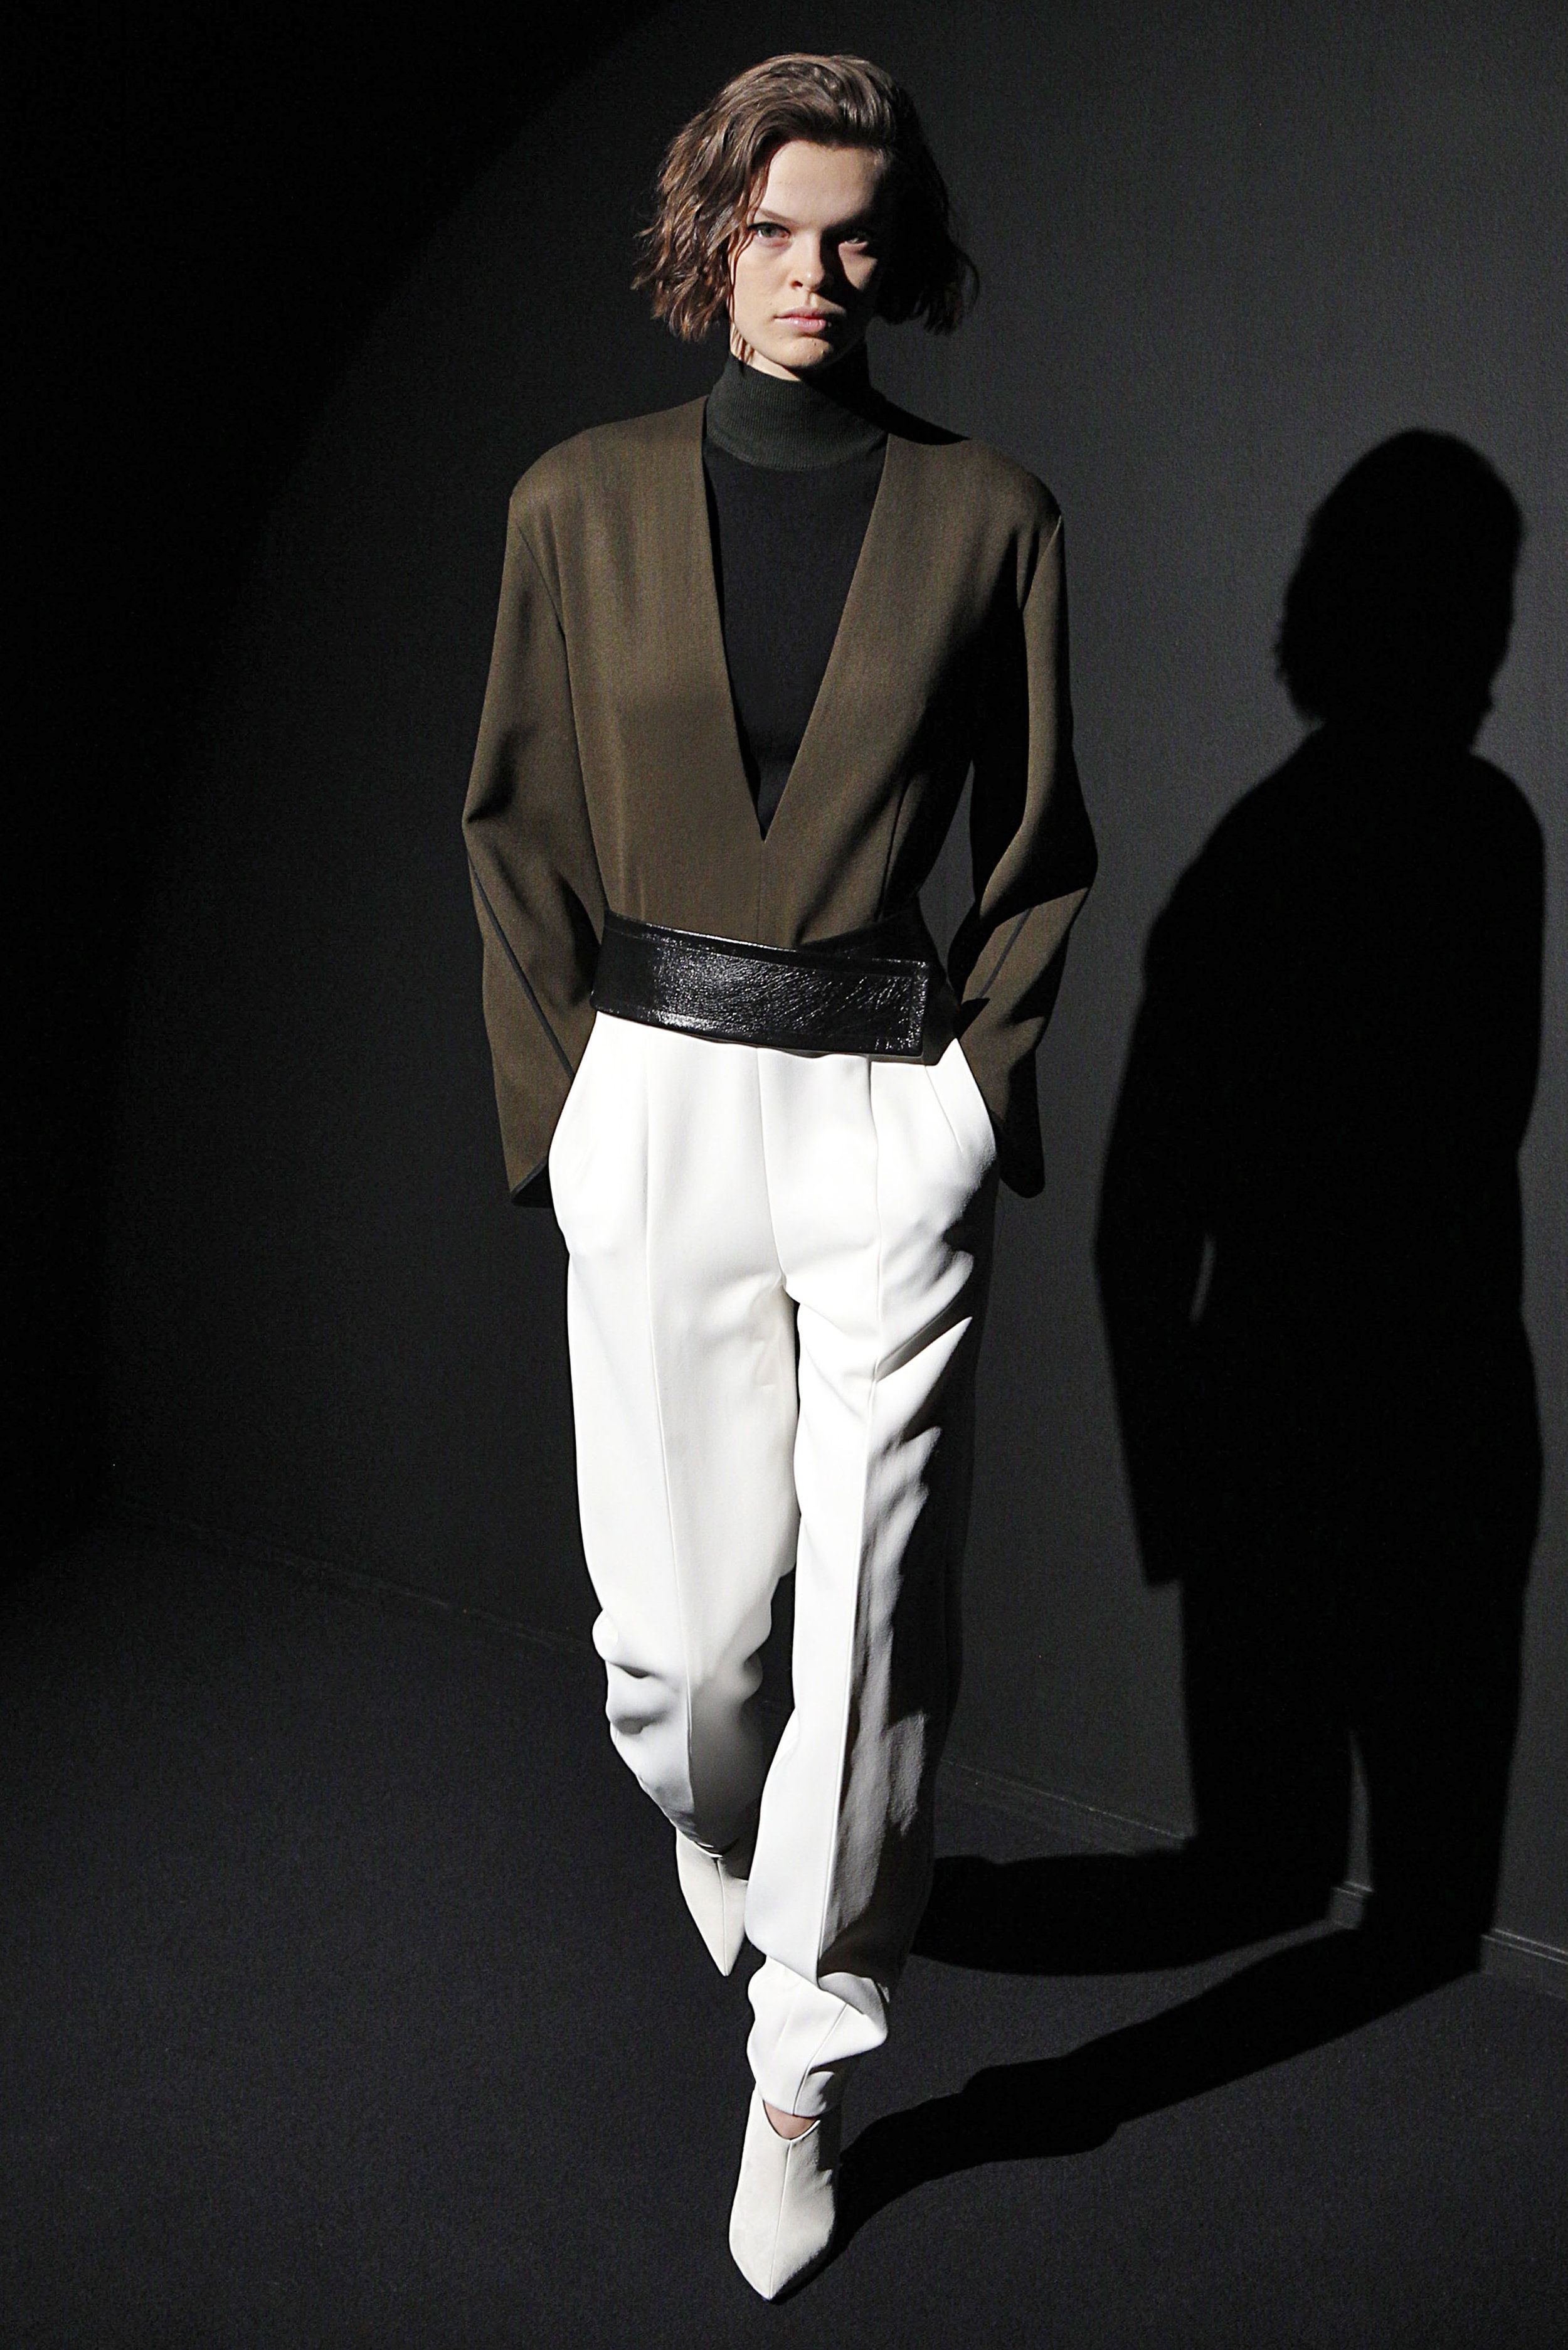 Look 3 Moss wool/white crepe jumpsuit with black sleeveless turtleneck and black leather belt.